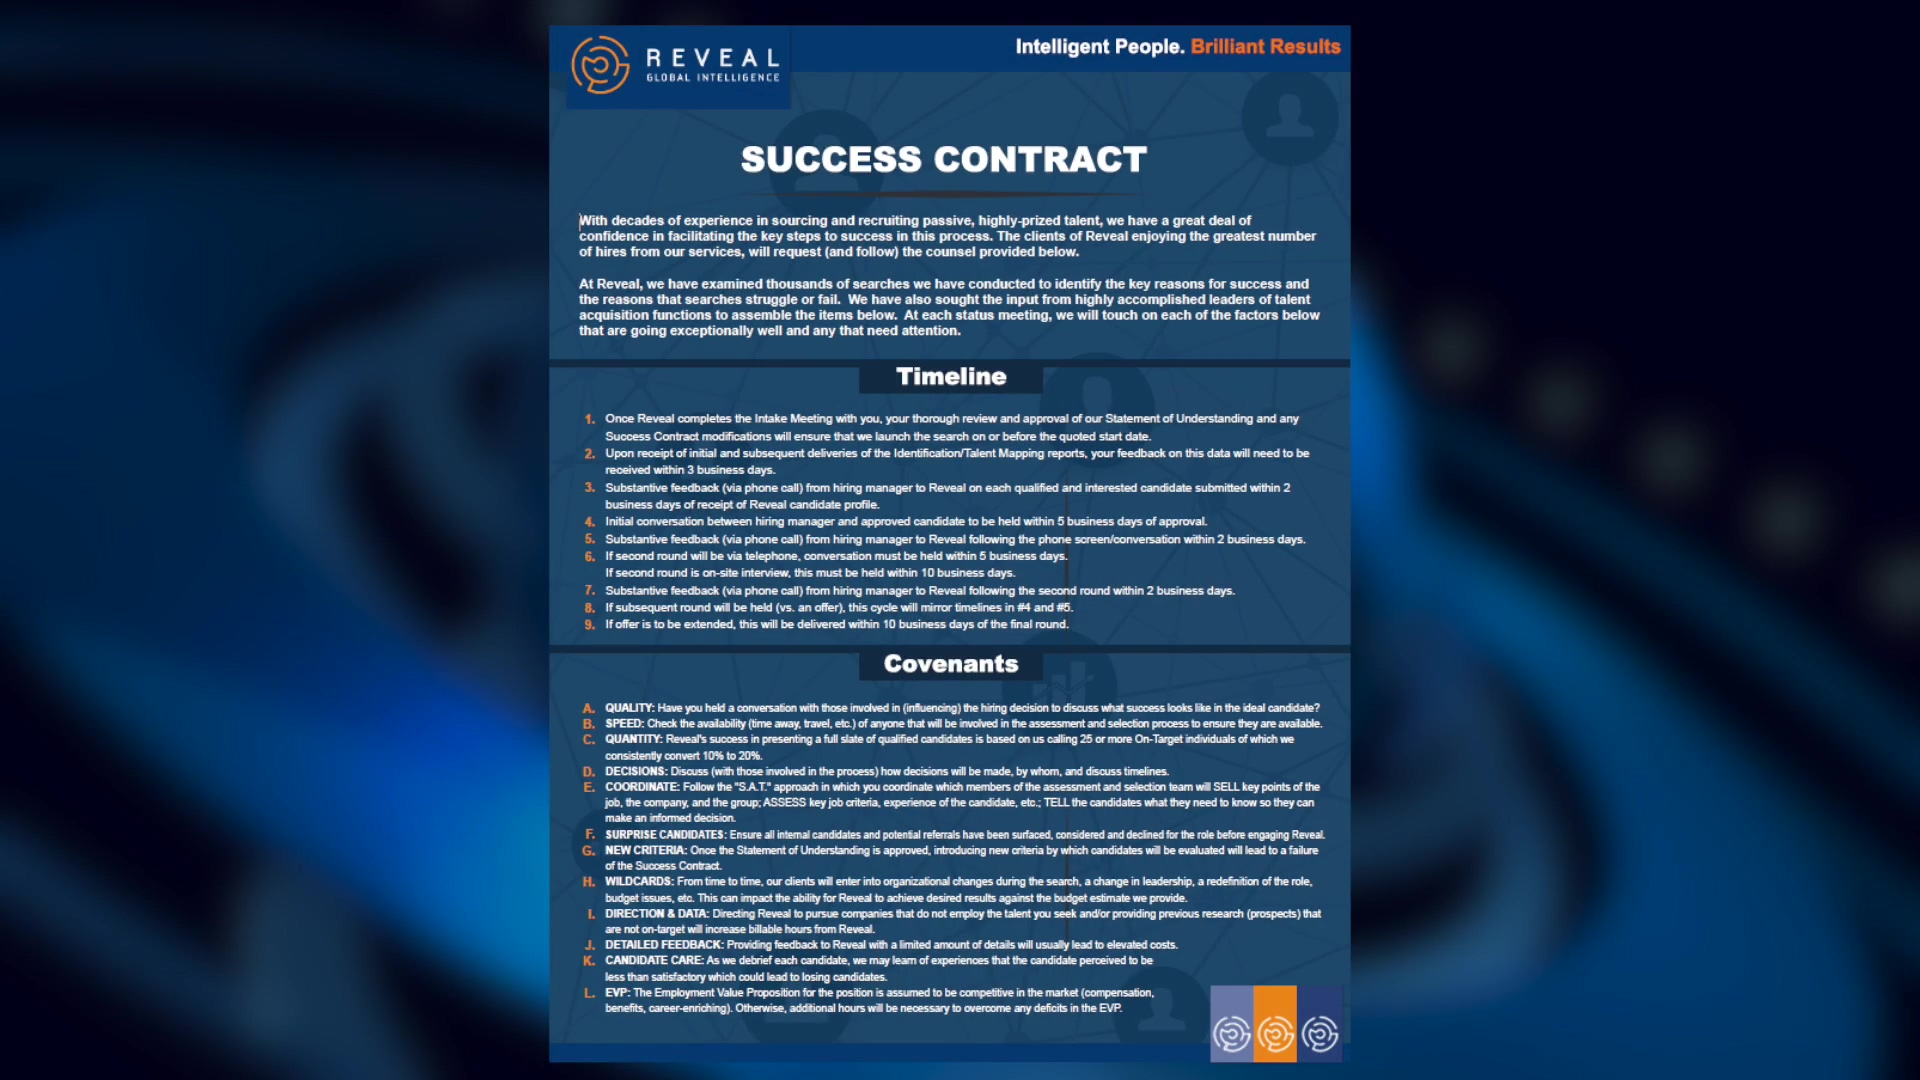 Reveal-The Success Contract #1 no microsite reference